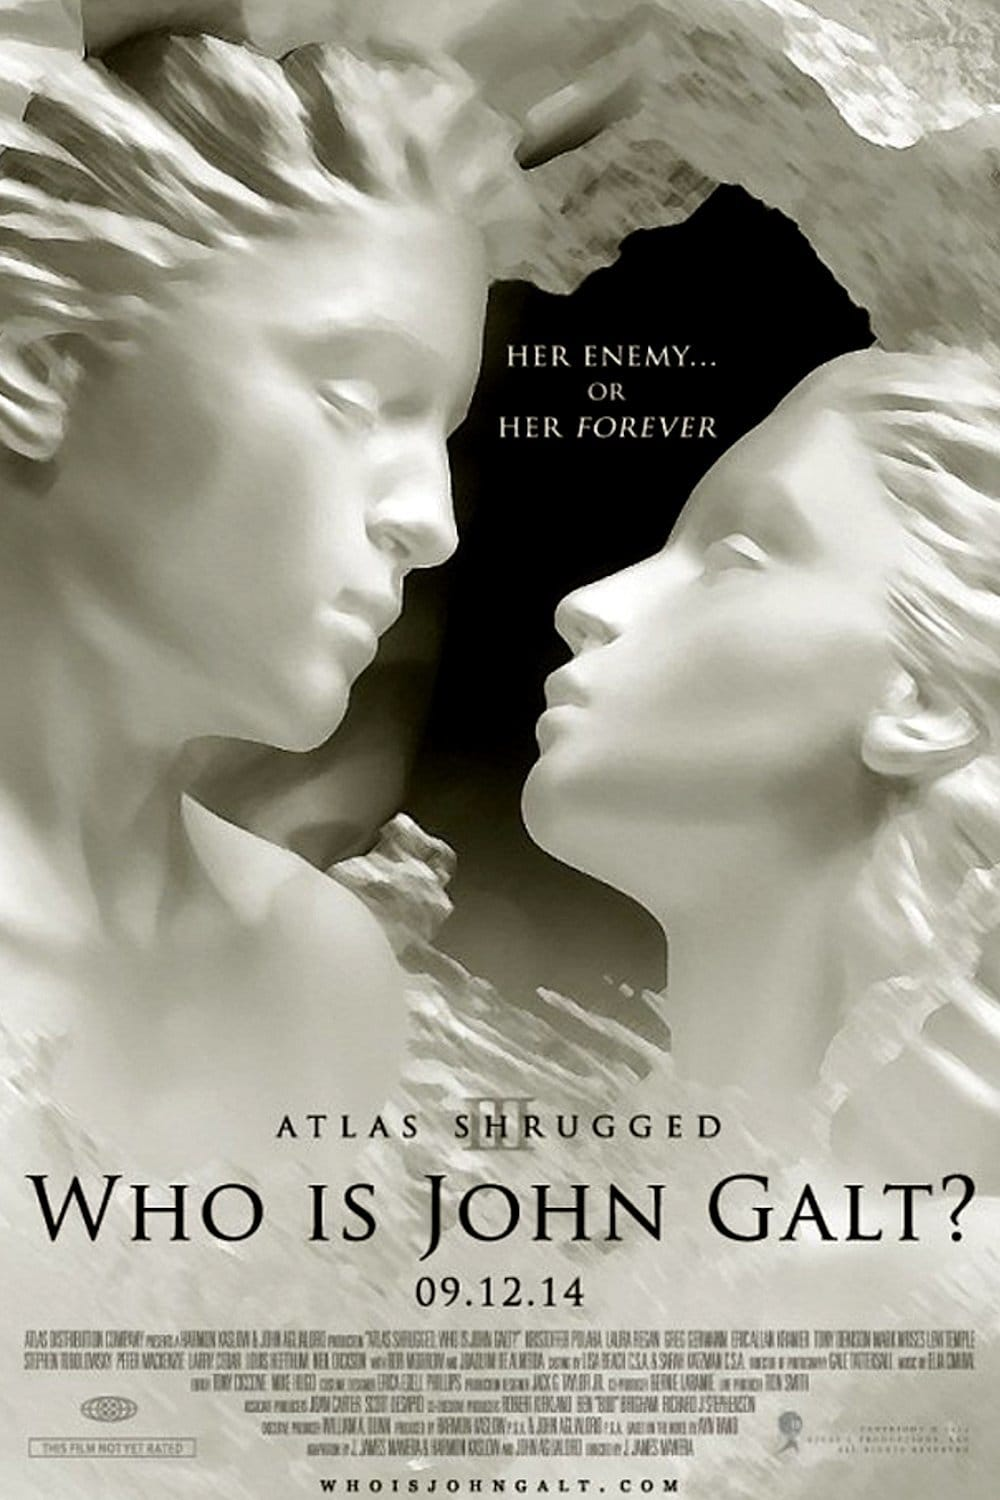 Atlas Shrugged III: Who is John Galt? poster